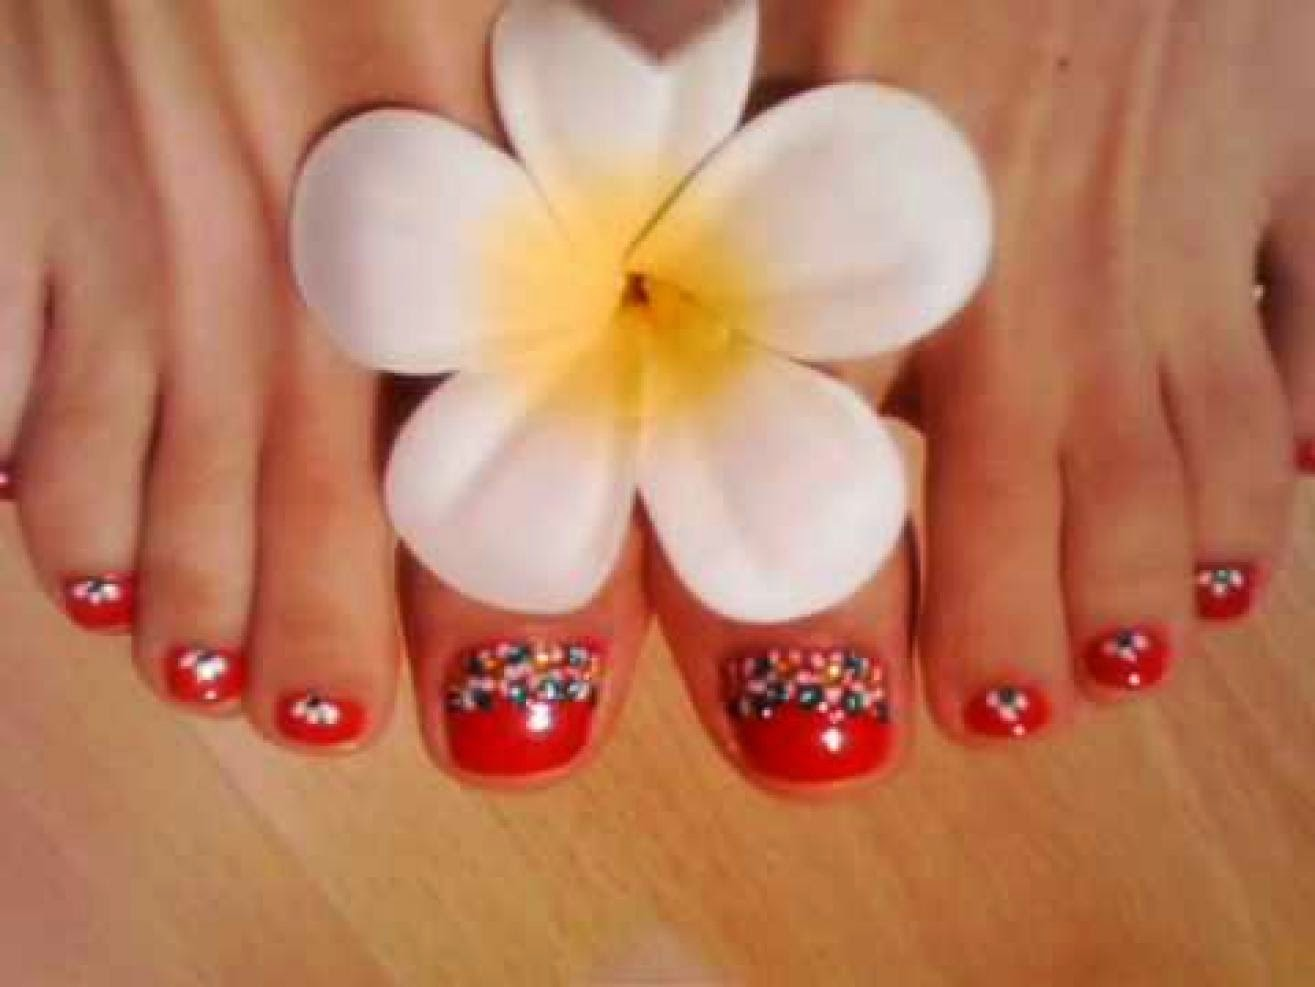 Red and black toe nail art designs beach nail art designs ideas red and black toe nail art designs galleryhip the hippest view images prinsesfo Image collections